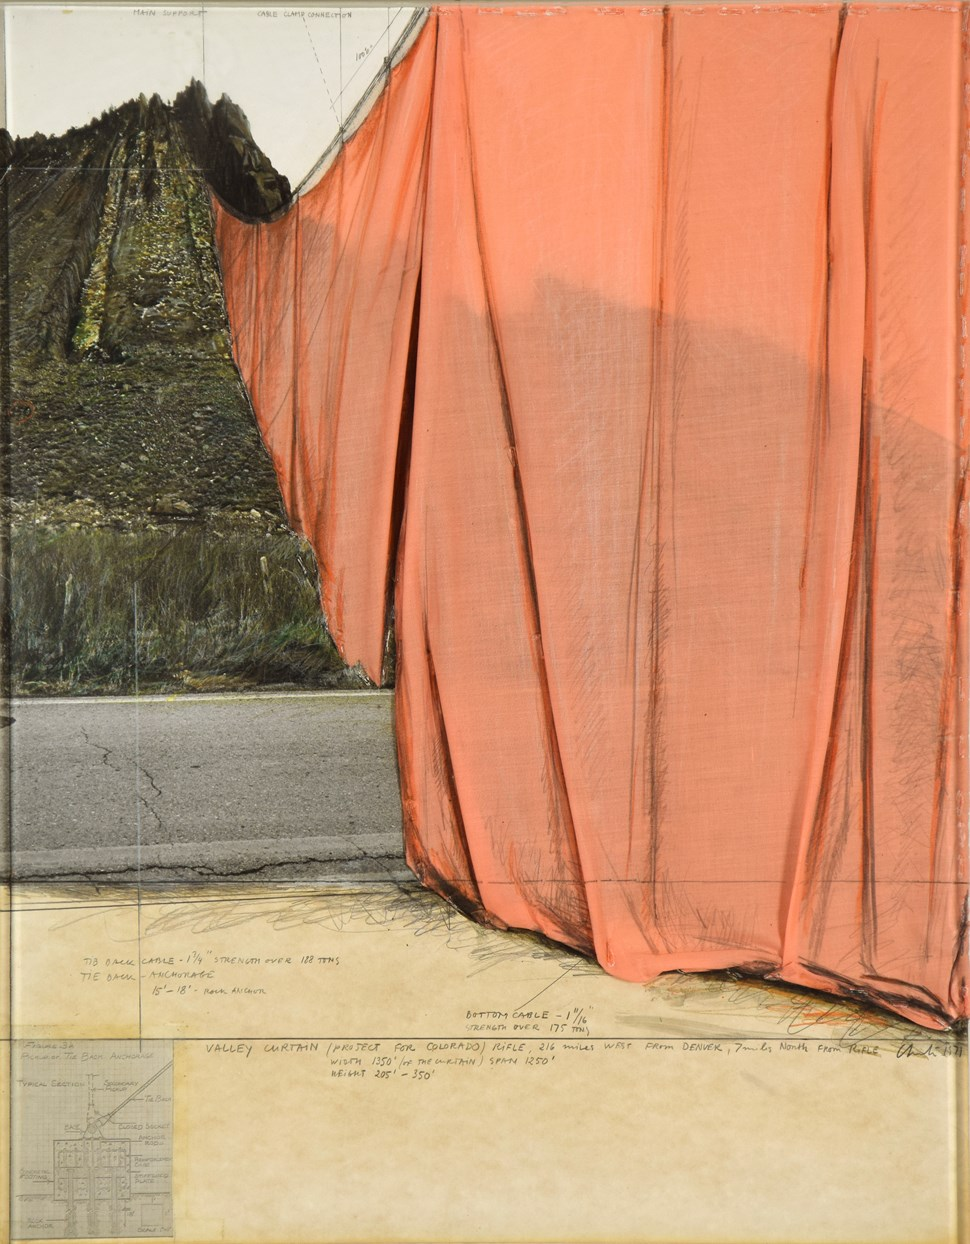 Valley Curtain (Project for Colorado) - Christo (1935 - )